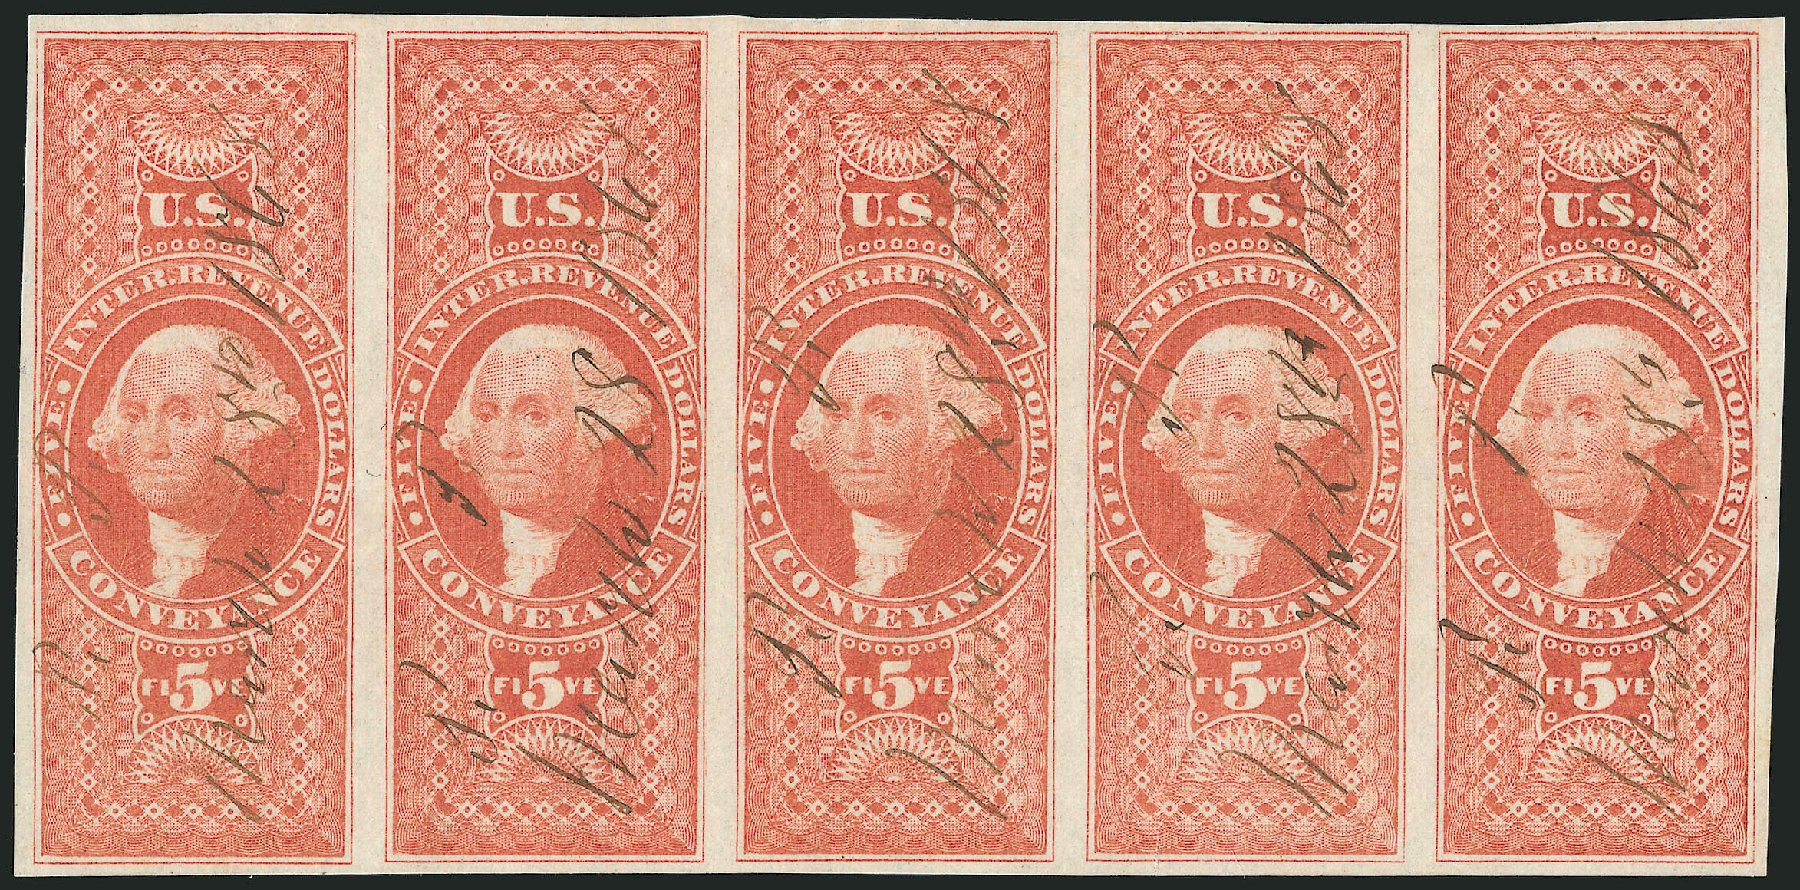 Value of US Stamp Scott Catalog R89: 1862 US$5.00 Revenue Conveyance. Robert Siegel Auction Galleries, Dec 2014, Sale 1089, Lot 369